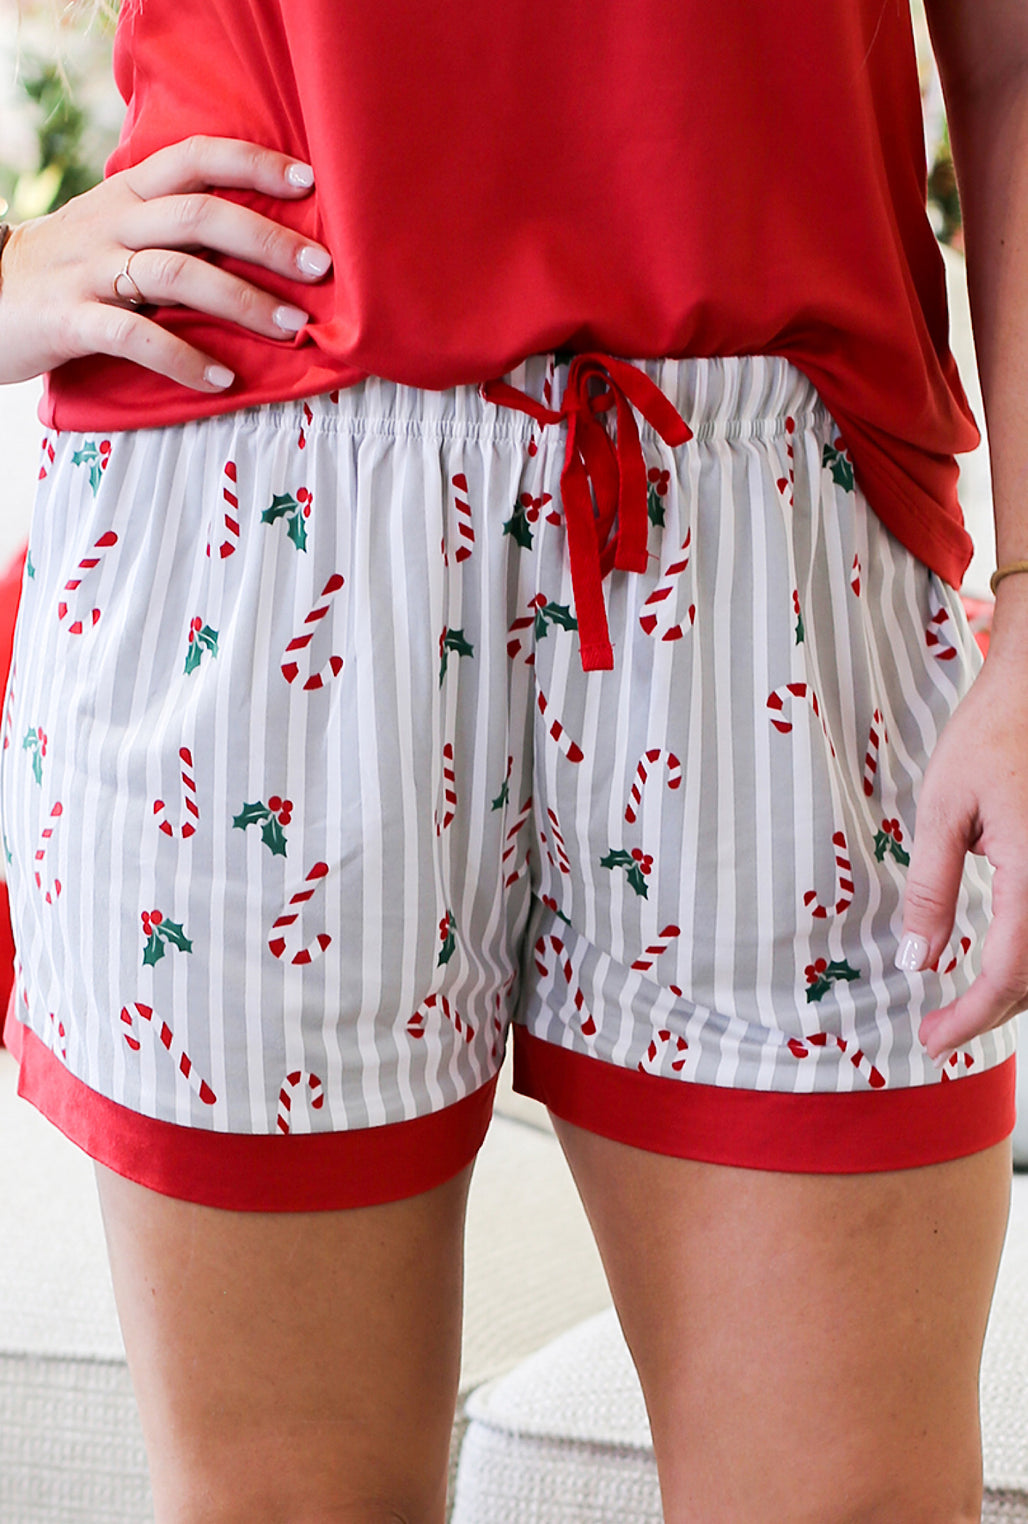 Holly Jolly Sleep Shorts - Bellamie Boutique